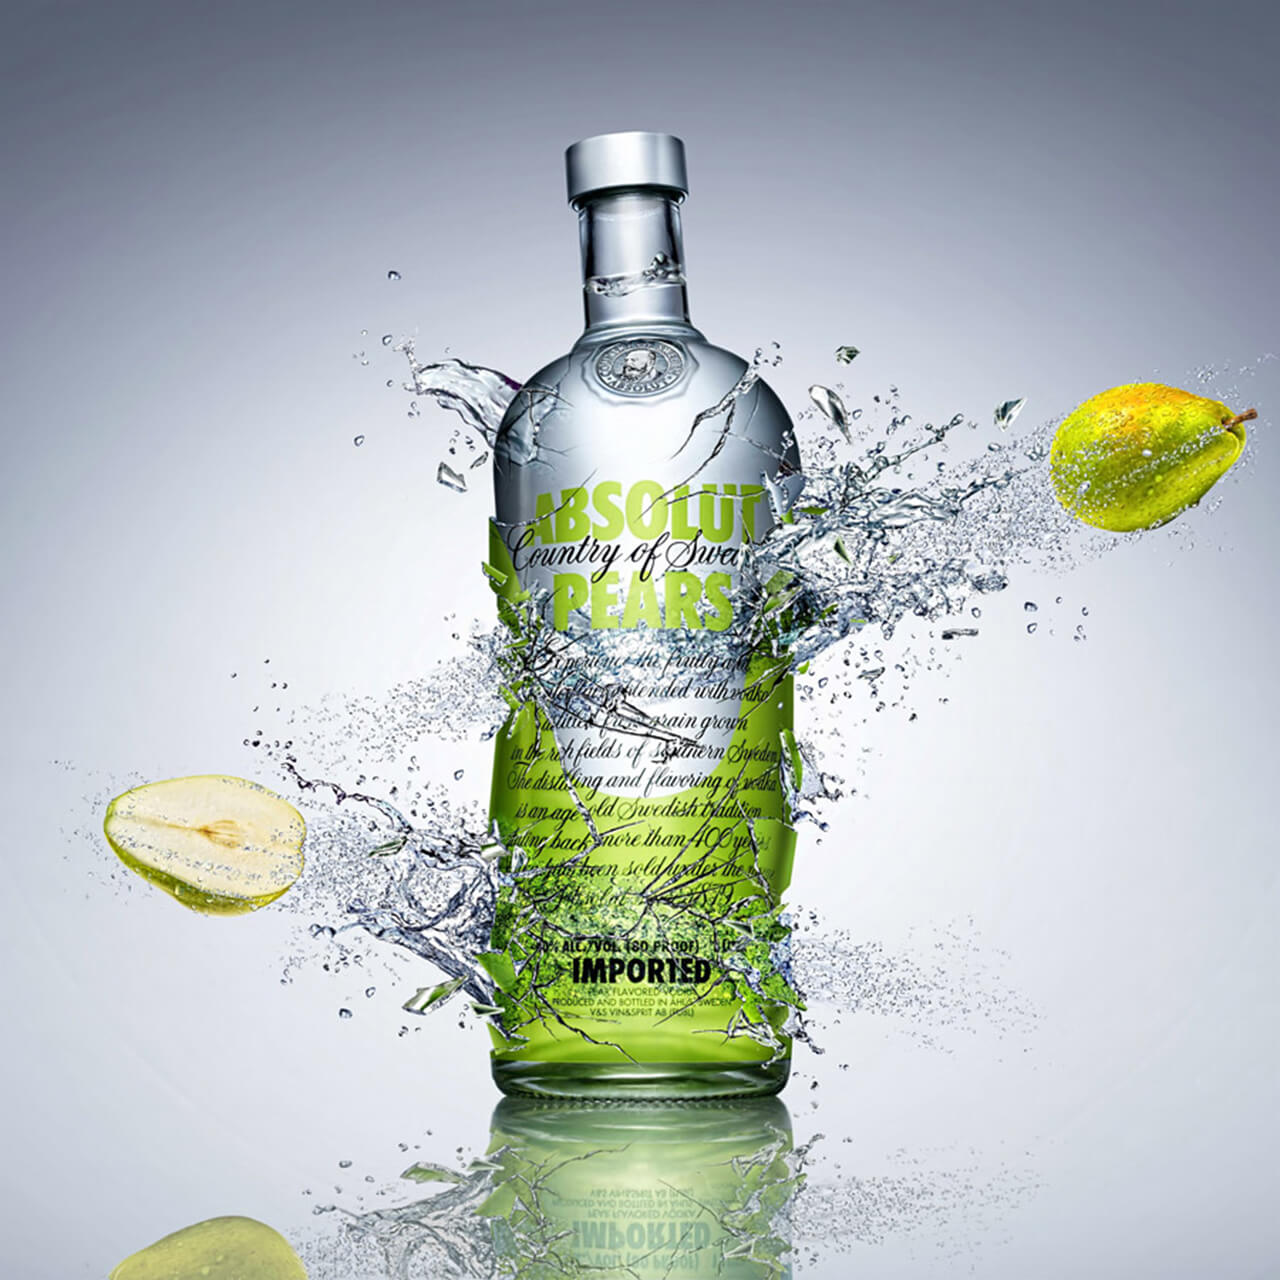 A computer Generated Image of a bottle shattering and liquid splashing and pears flying out